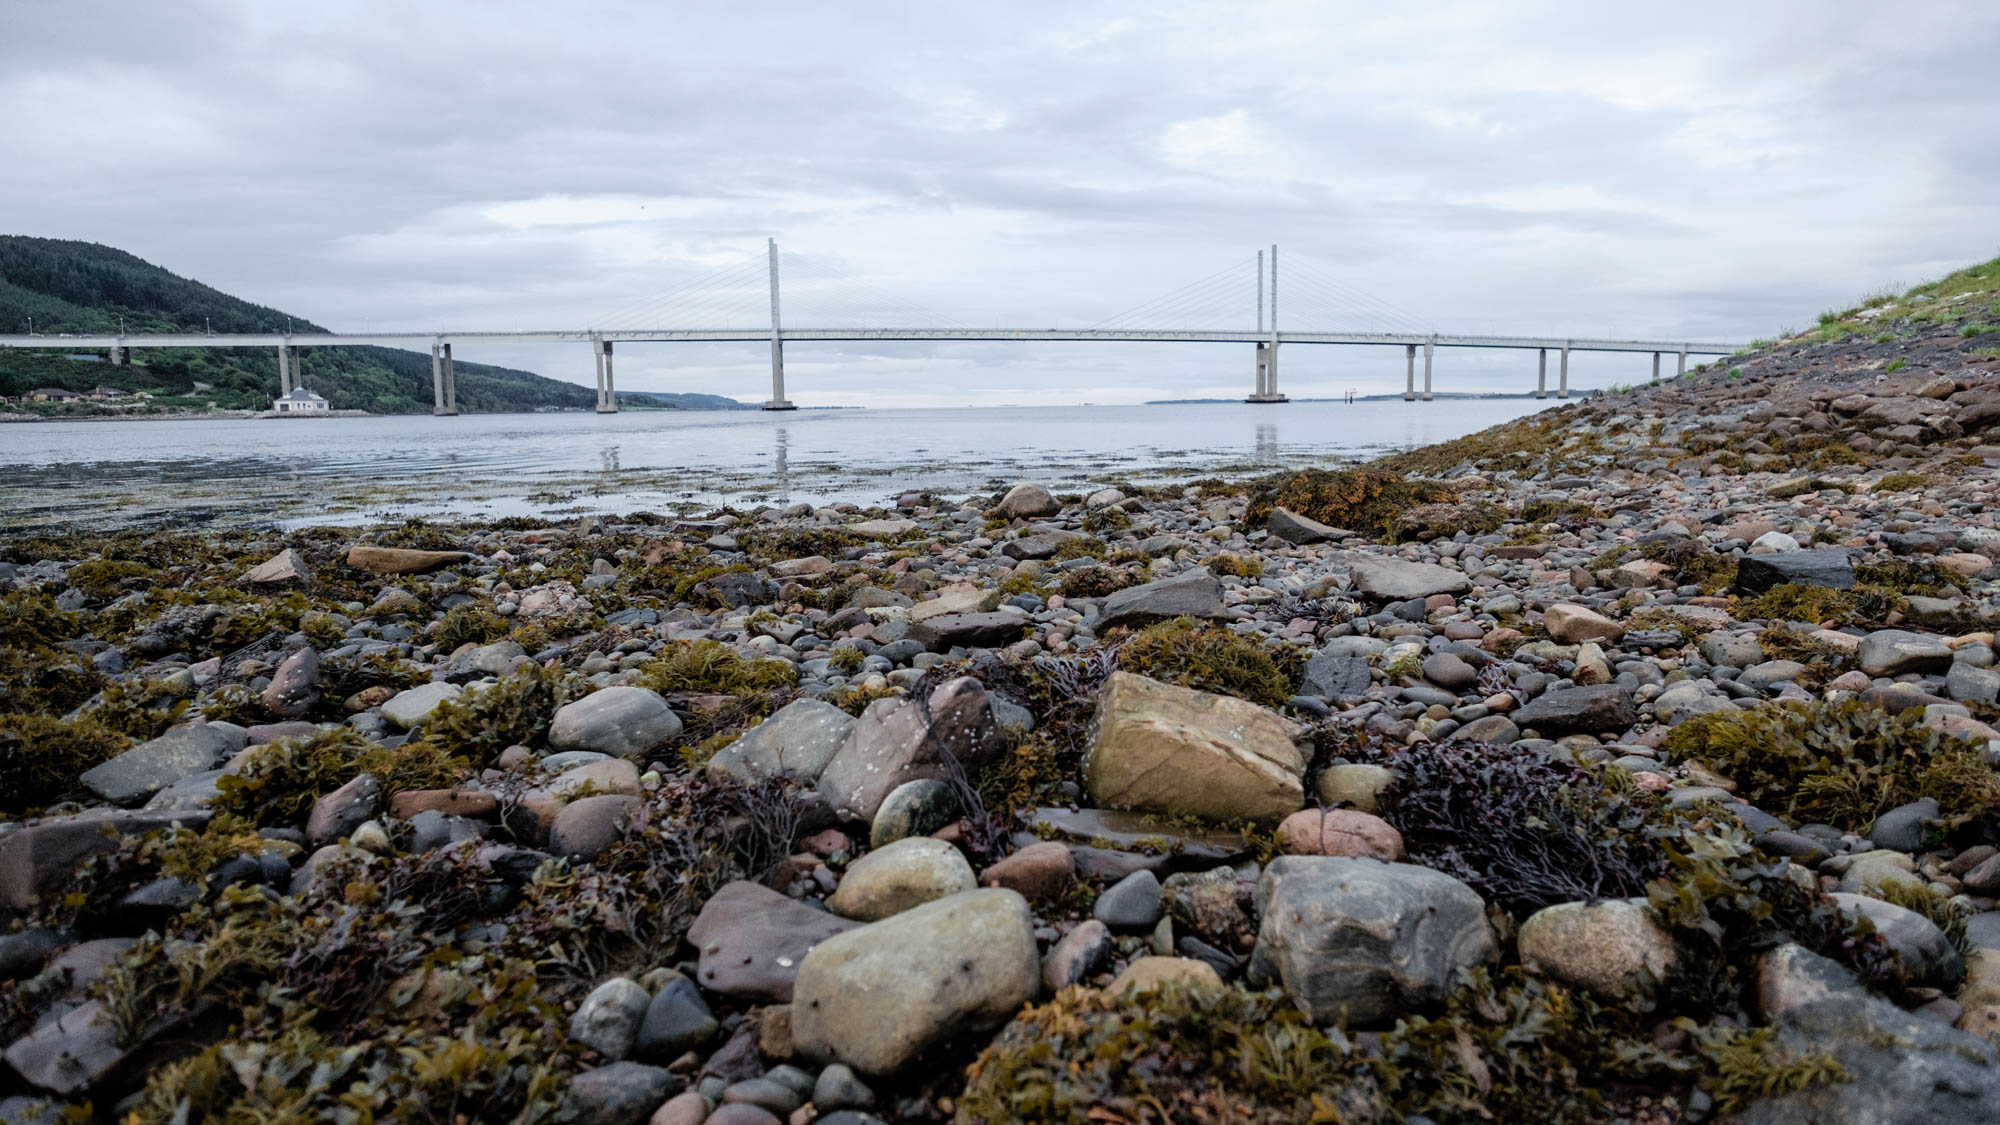 Kessock Bridge bei Inverness Schottland